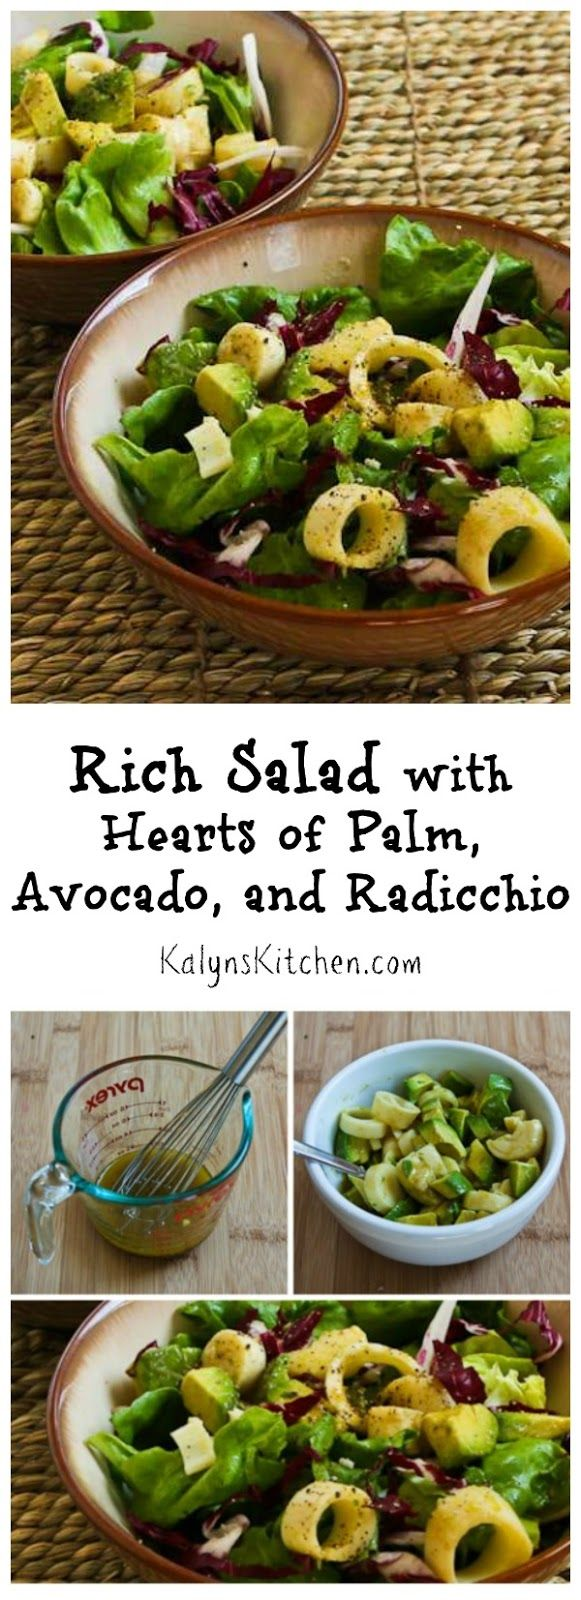 Rich Salad with Hearts of Palm, Avocado, and Radicchio is perfect for a special meal. (Low-Carb, Gluten-Free, Can Be Paleo)  [found on KalynsKitchen.com]